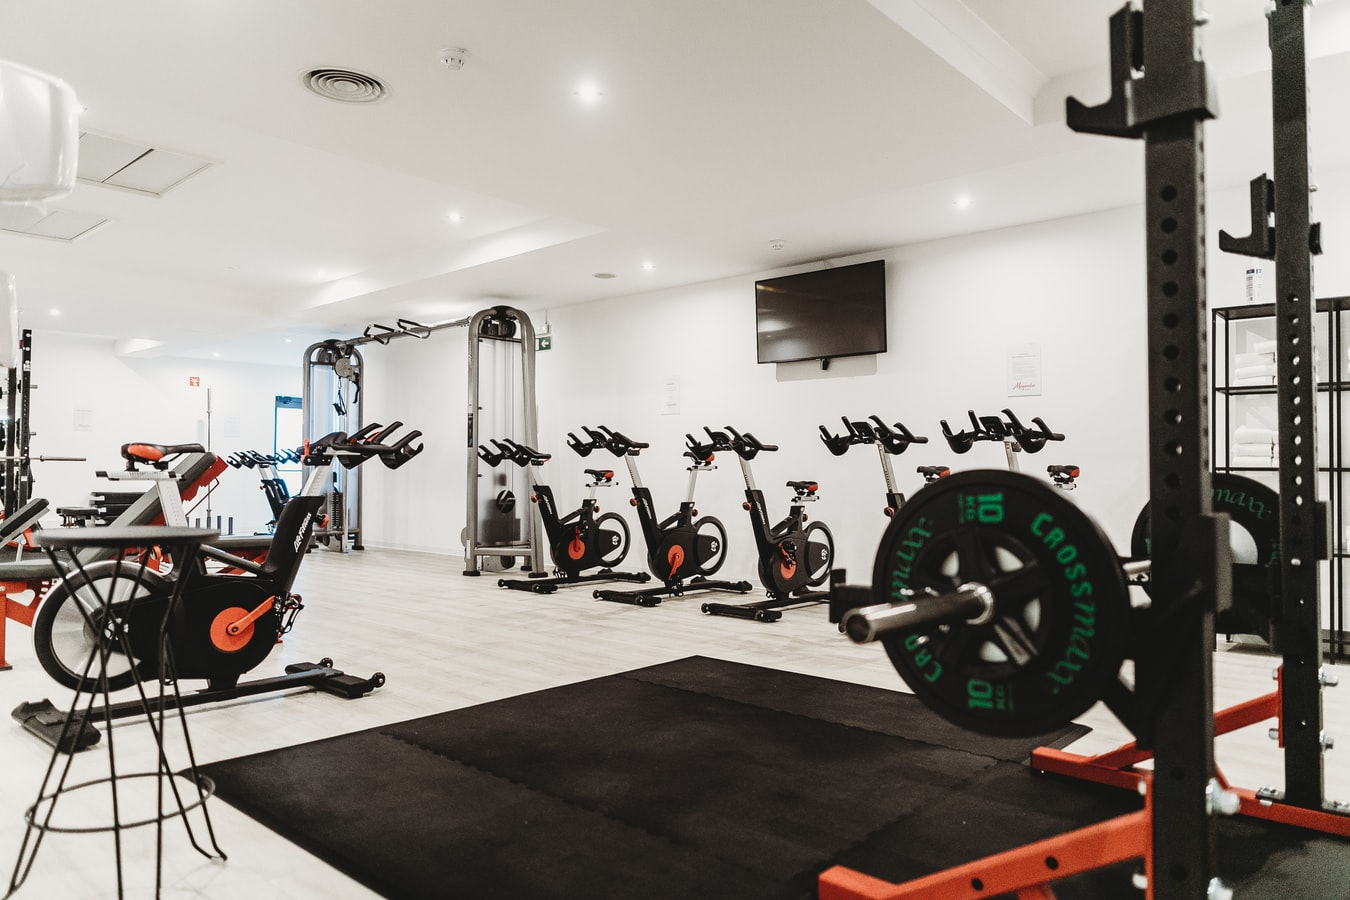 7 GYM CARDIO MACHINES IDEAL FOR WEIGHT LOSS